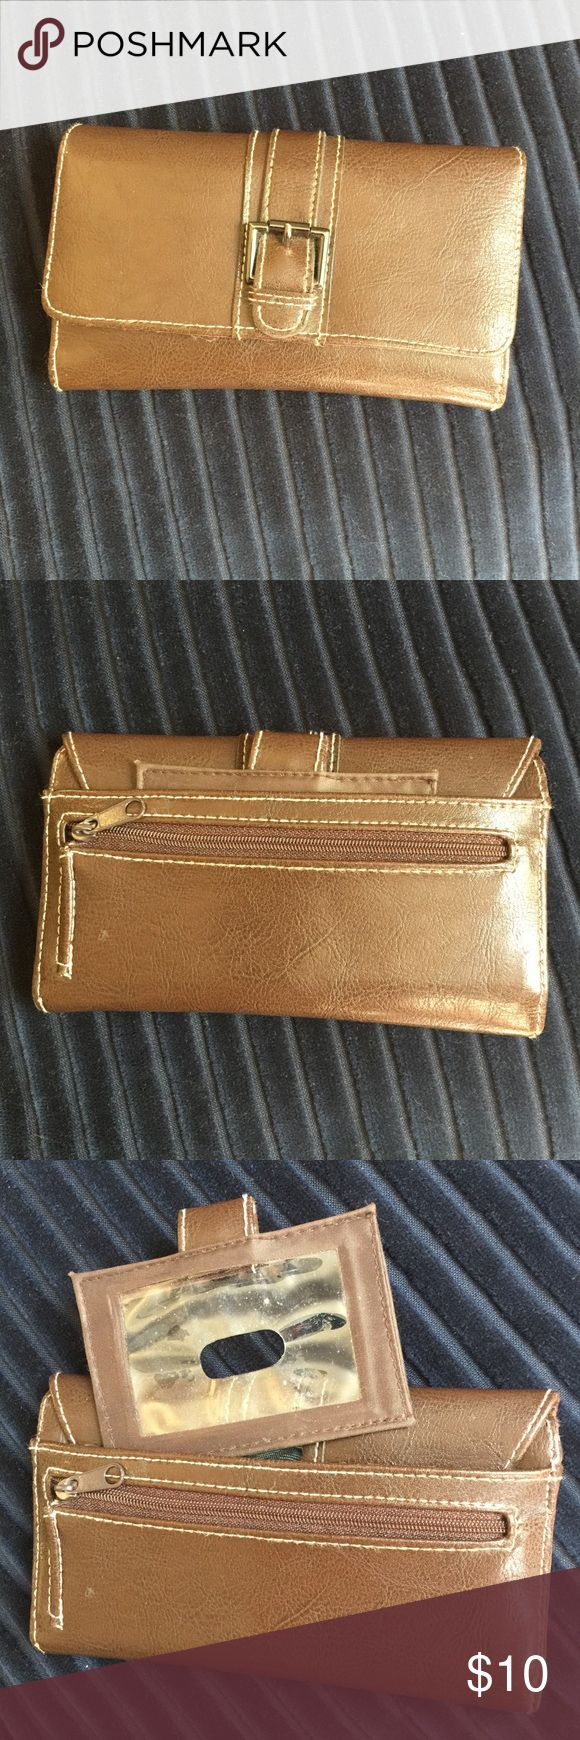 "NWOT Brown trifold wallet. Closed 7""x4"" open 10.5"" Trifold wallet. Brown. Snap closure. Trifold. Pockets for pen, credit cards, checks. Separate pullout holder for ID. NWOT. All orders are shipped same or next business day. Bundle to save even more money. Bags Wallets"